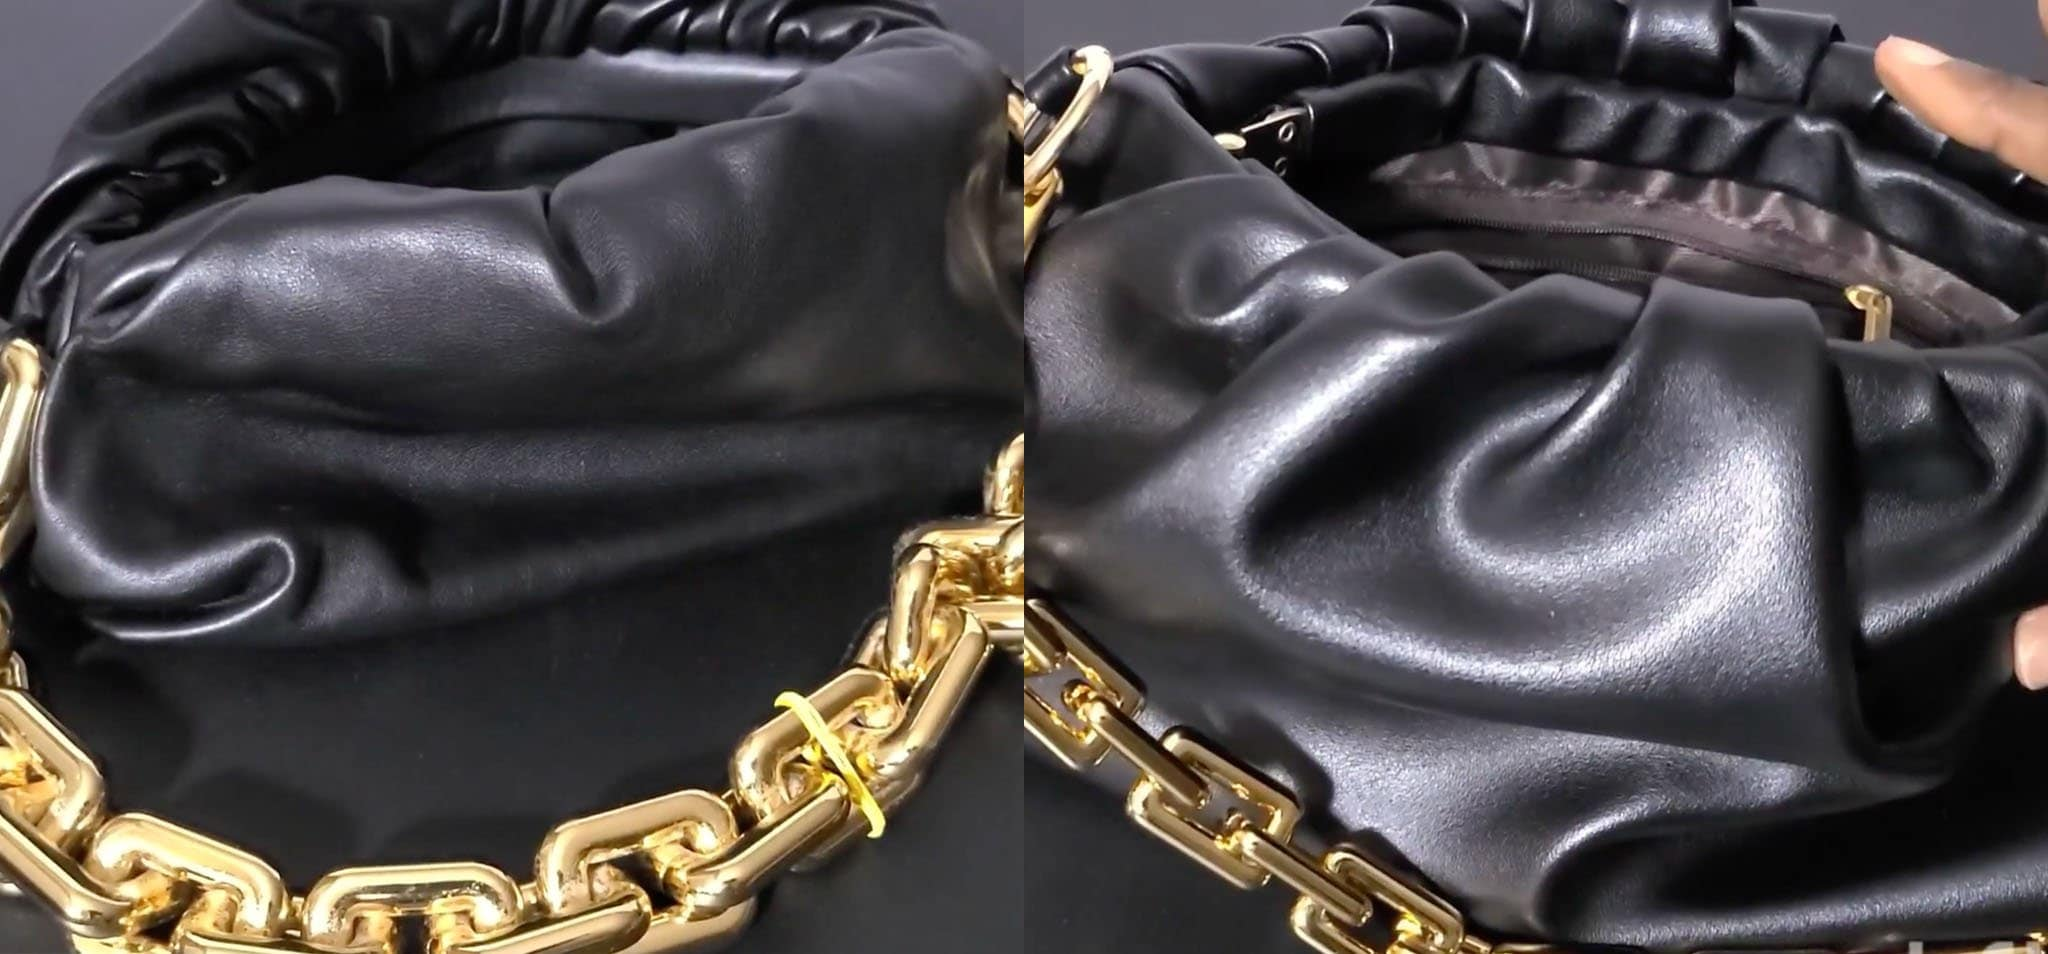 A real Bottega Veneta bag (left) is made of thick yet buttery-soft leather, while a fake Bottega Veneta bag (right) uses low-quality fake leather material